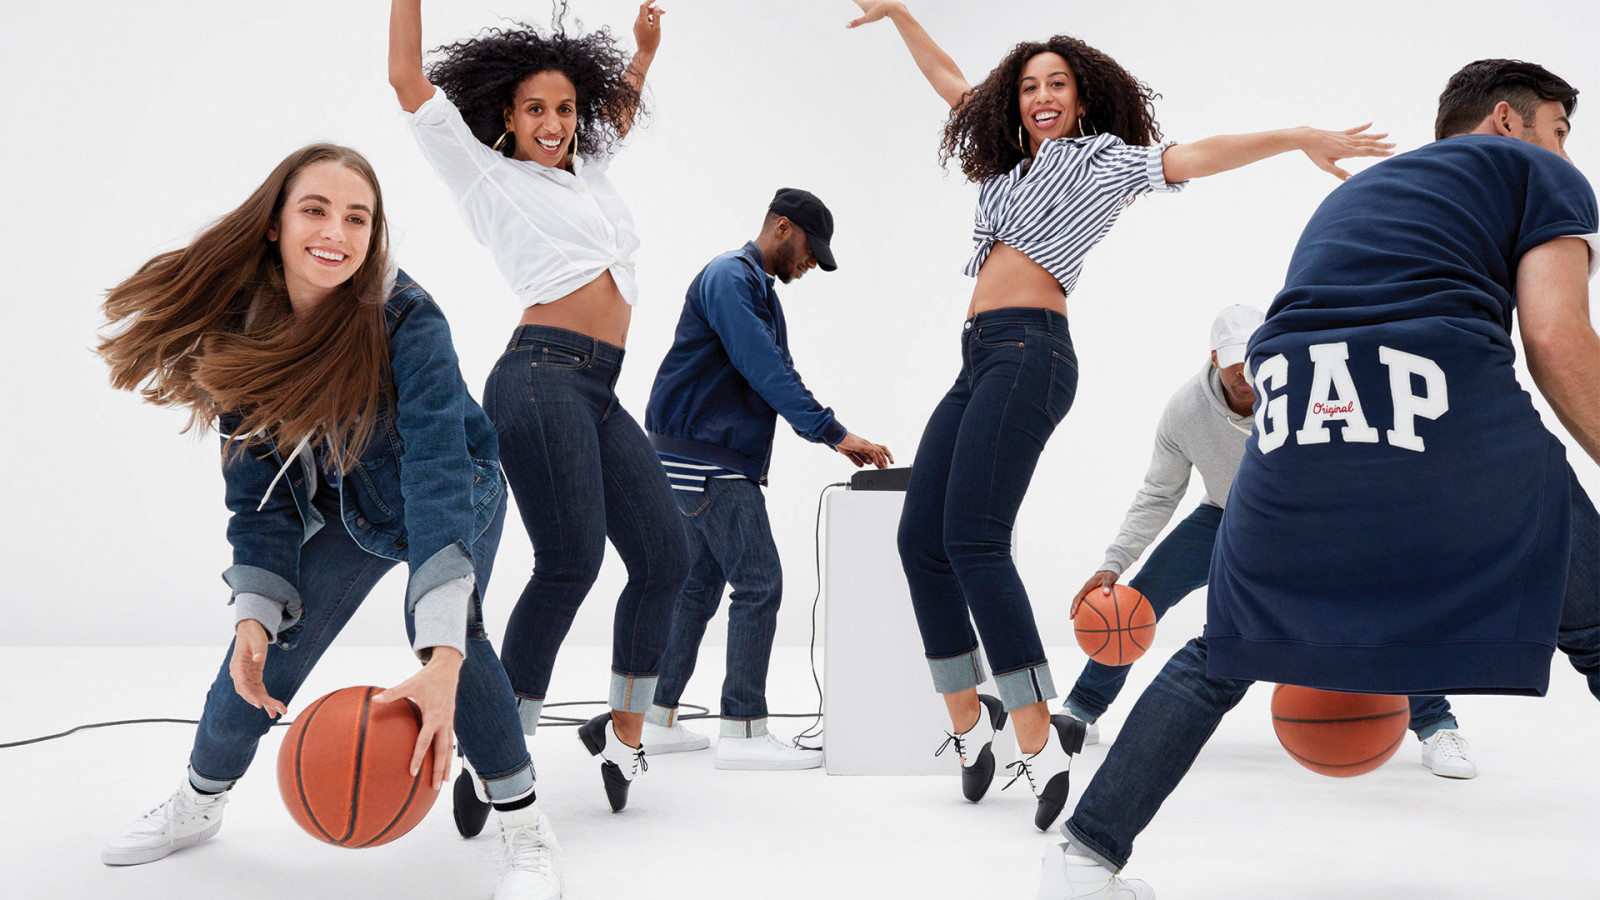 GAP : Extra 50% Off Sale + Additional 10% Off . Use codes FIFTY